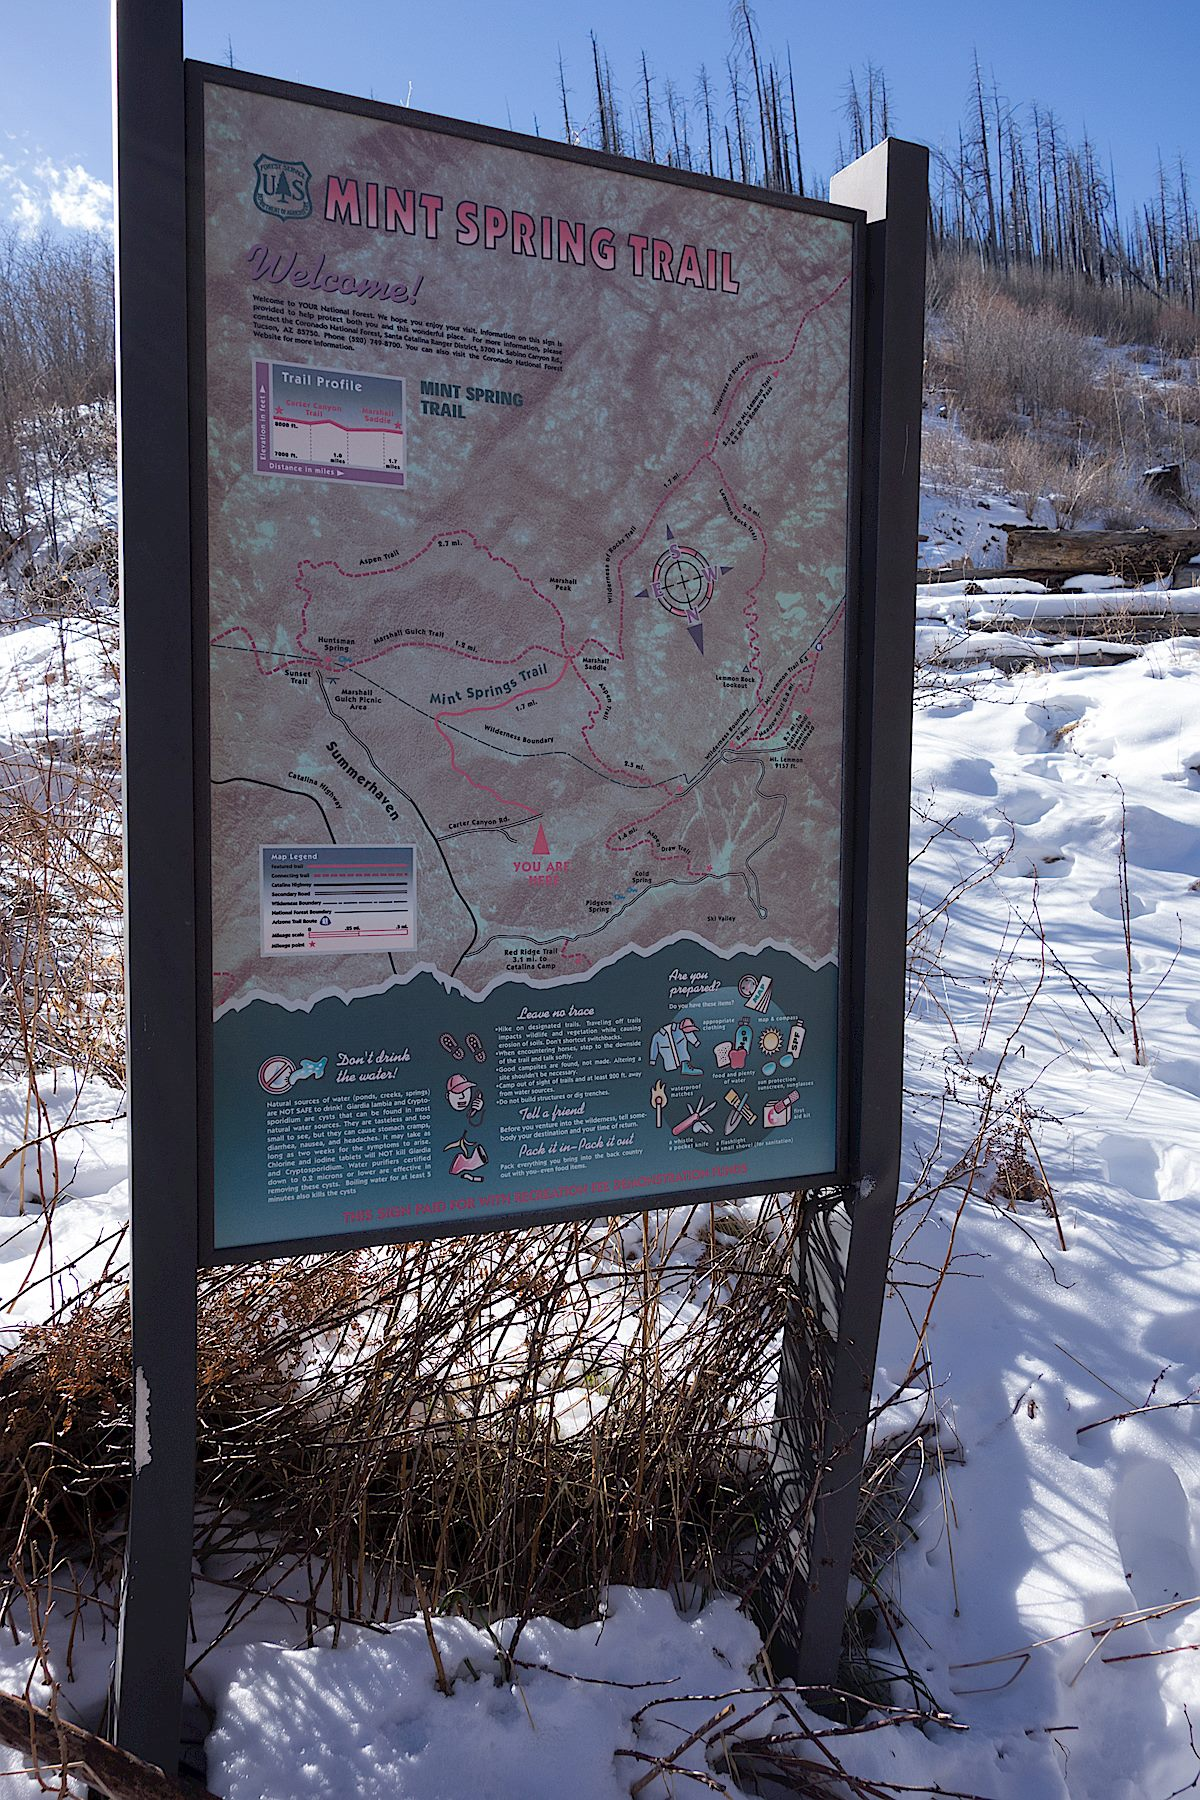 Small trail sign near the start of the trail. April 2014.